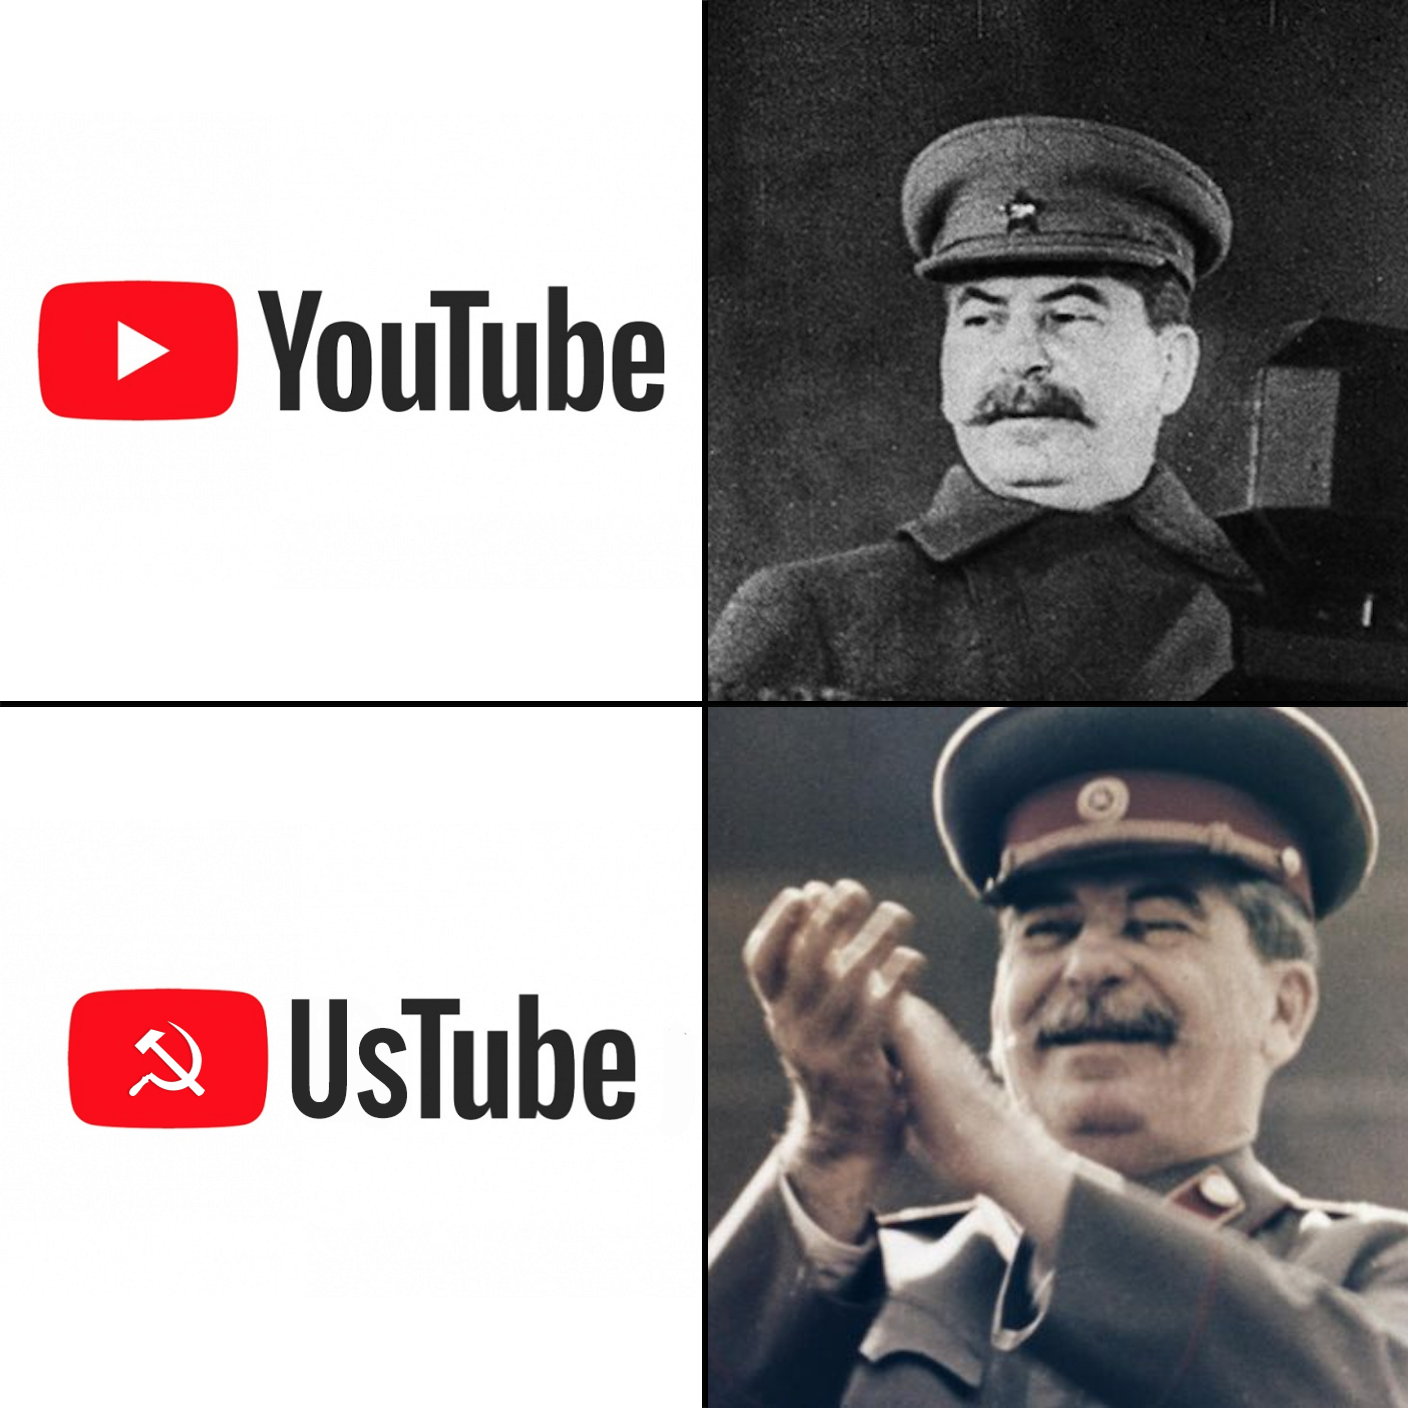 I listened to the USSR theme song whilst making this